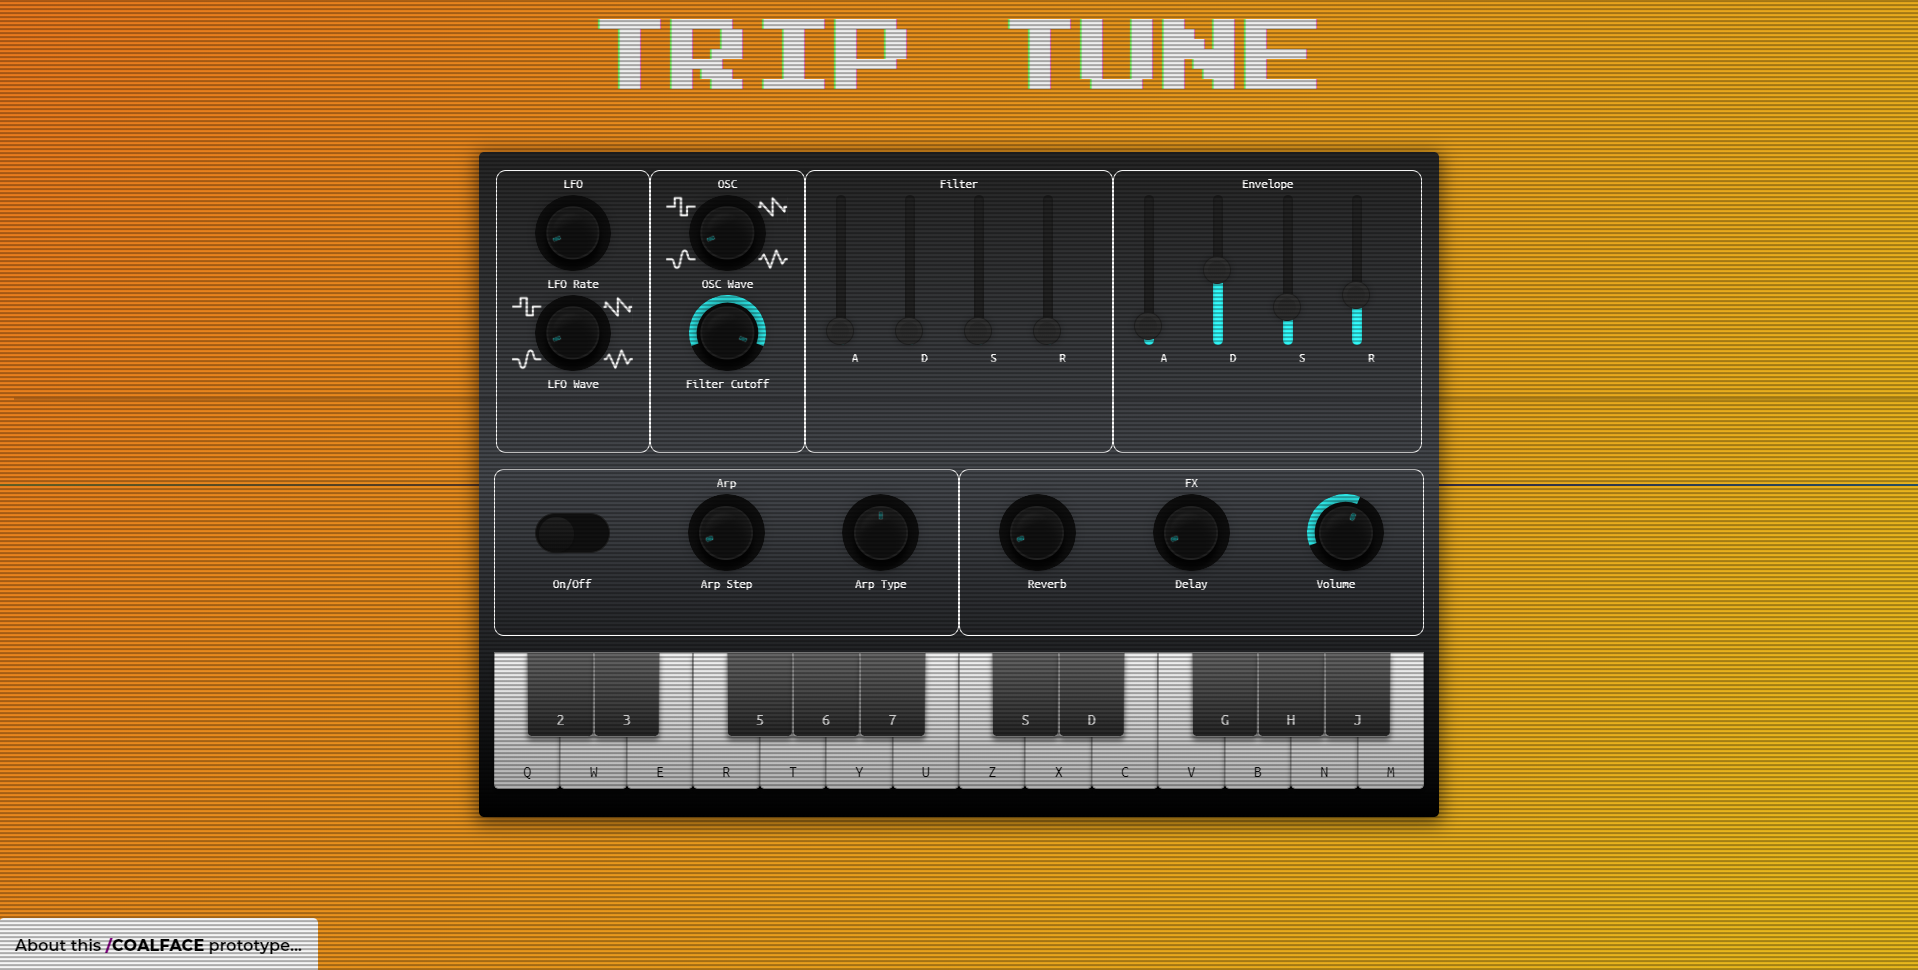 Trip tune screenshot